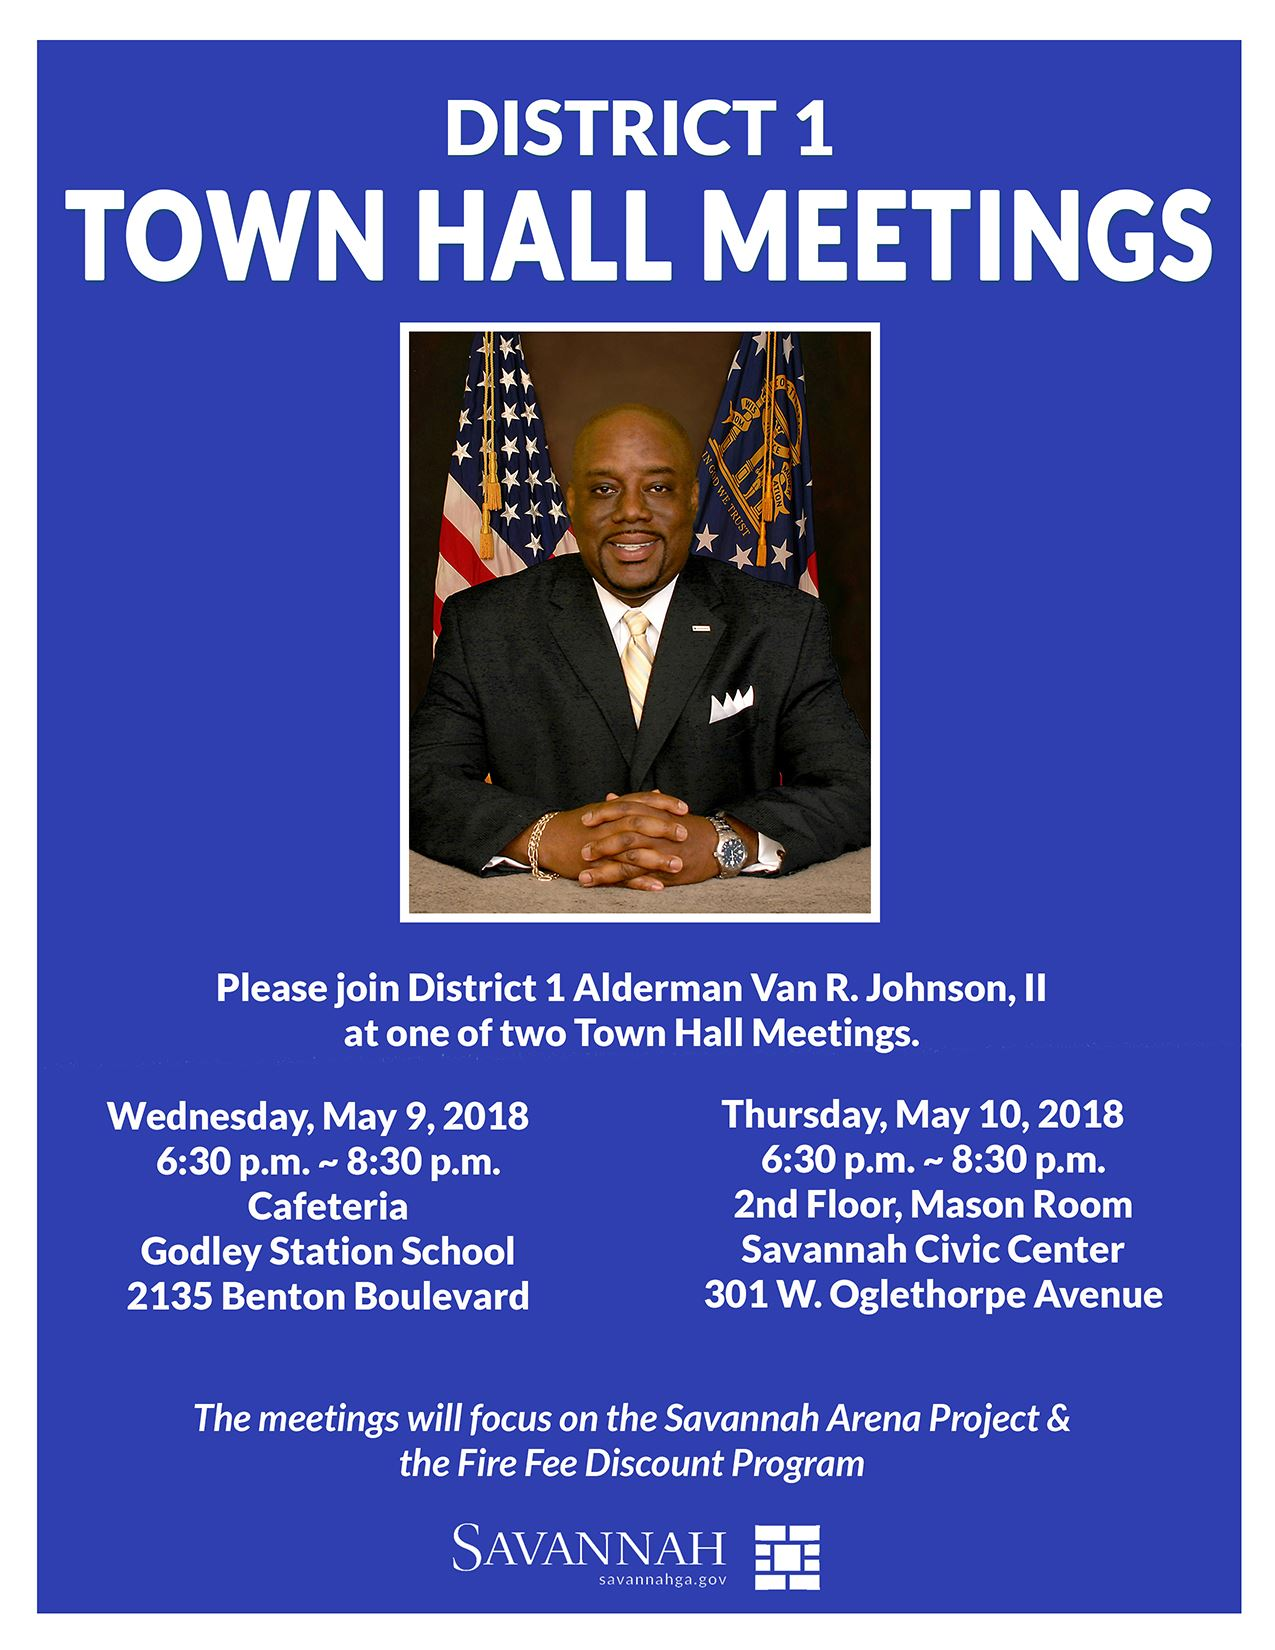 District 1 Town Hall Meeting 05102018 Invitation size